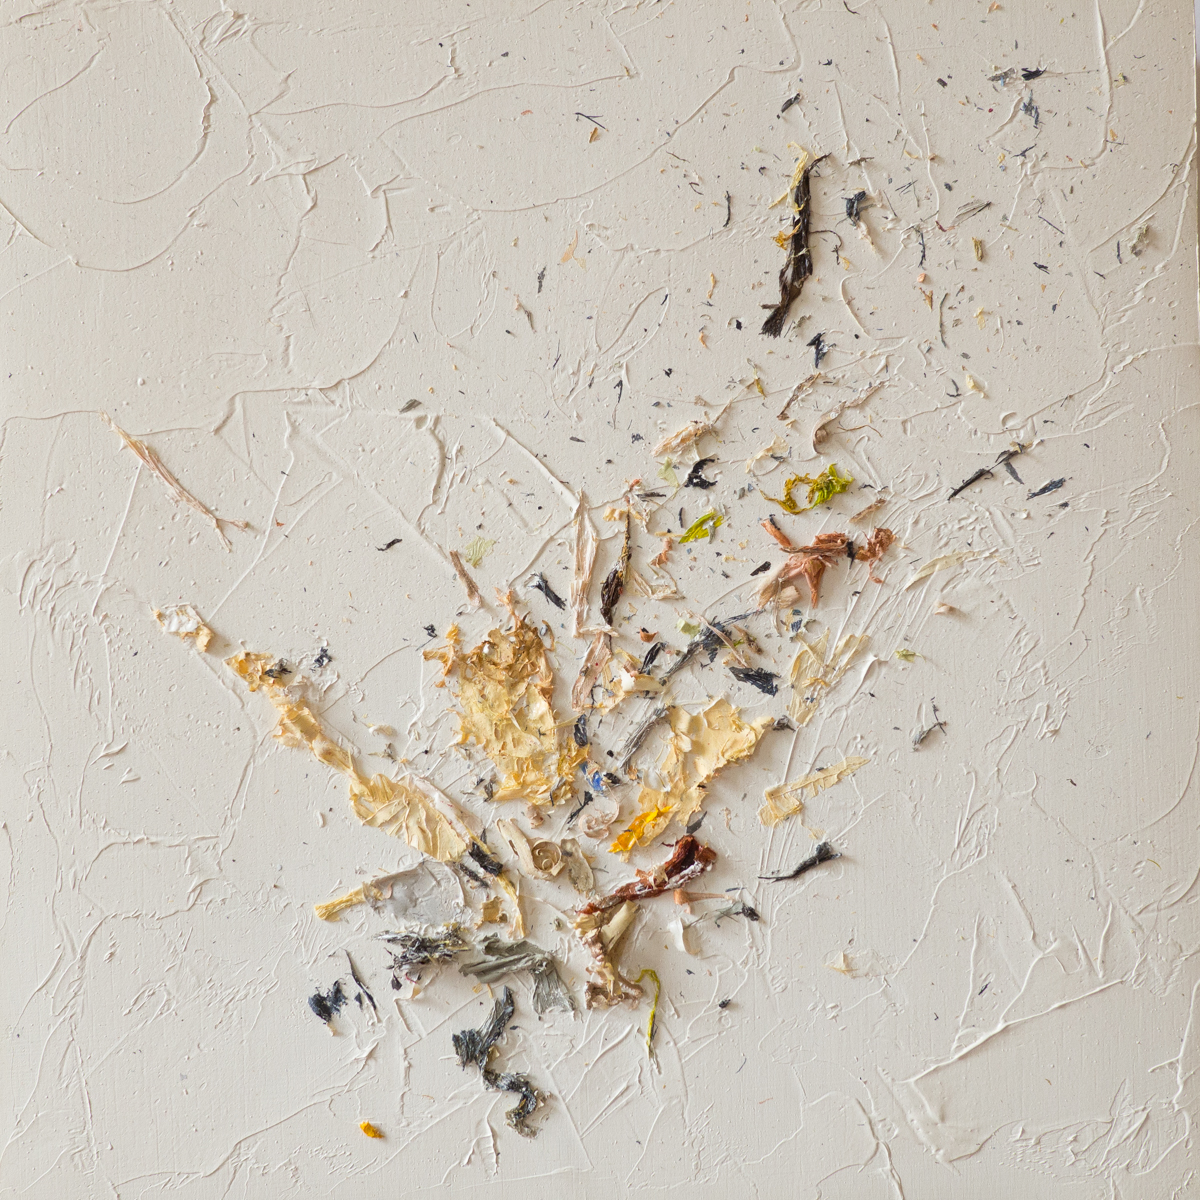 The Complexities of Emotions No.8   oils & oil paint scrapings on wood panel, 6 x 6